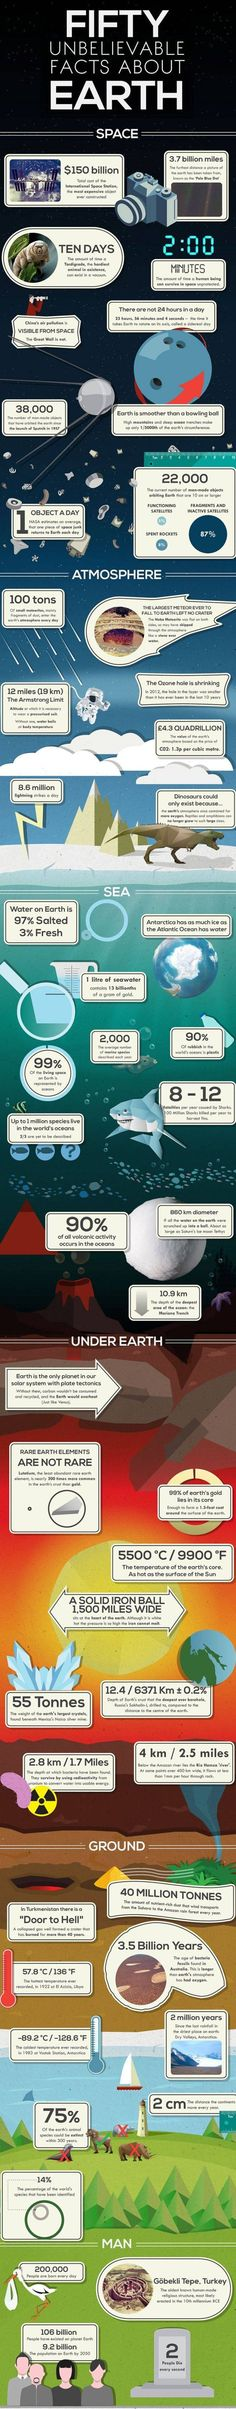 This infographic depicts 50 facinating facts about Earth that may surprise you.